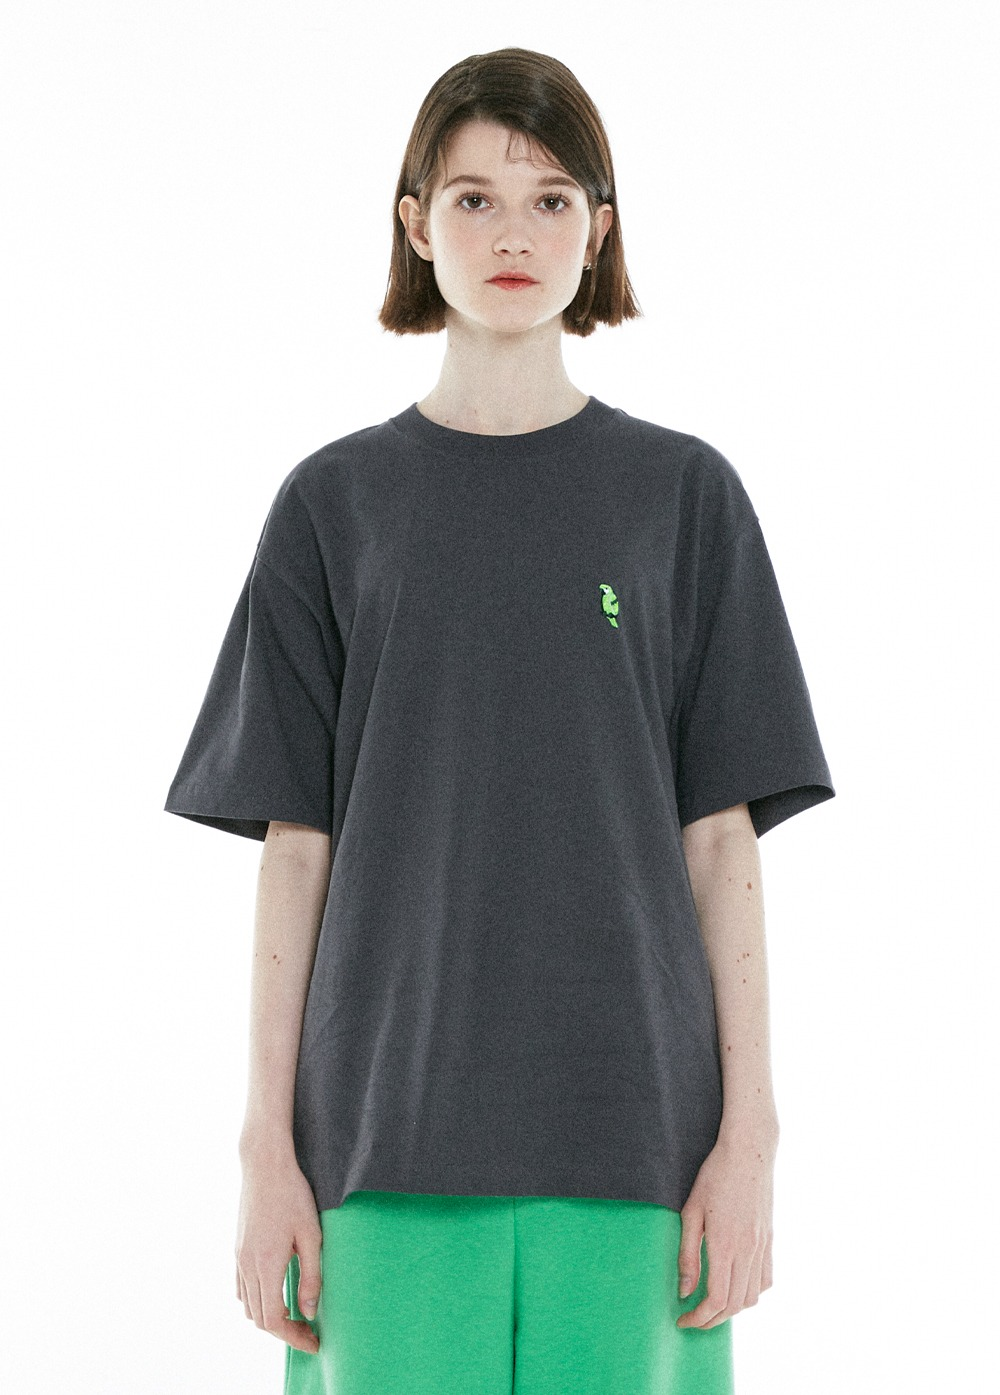 KANCO FULL LOGO TEE charcoal